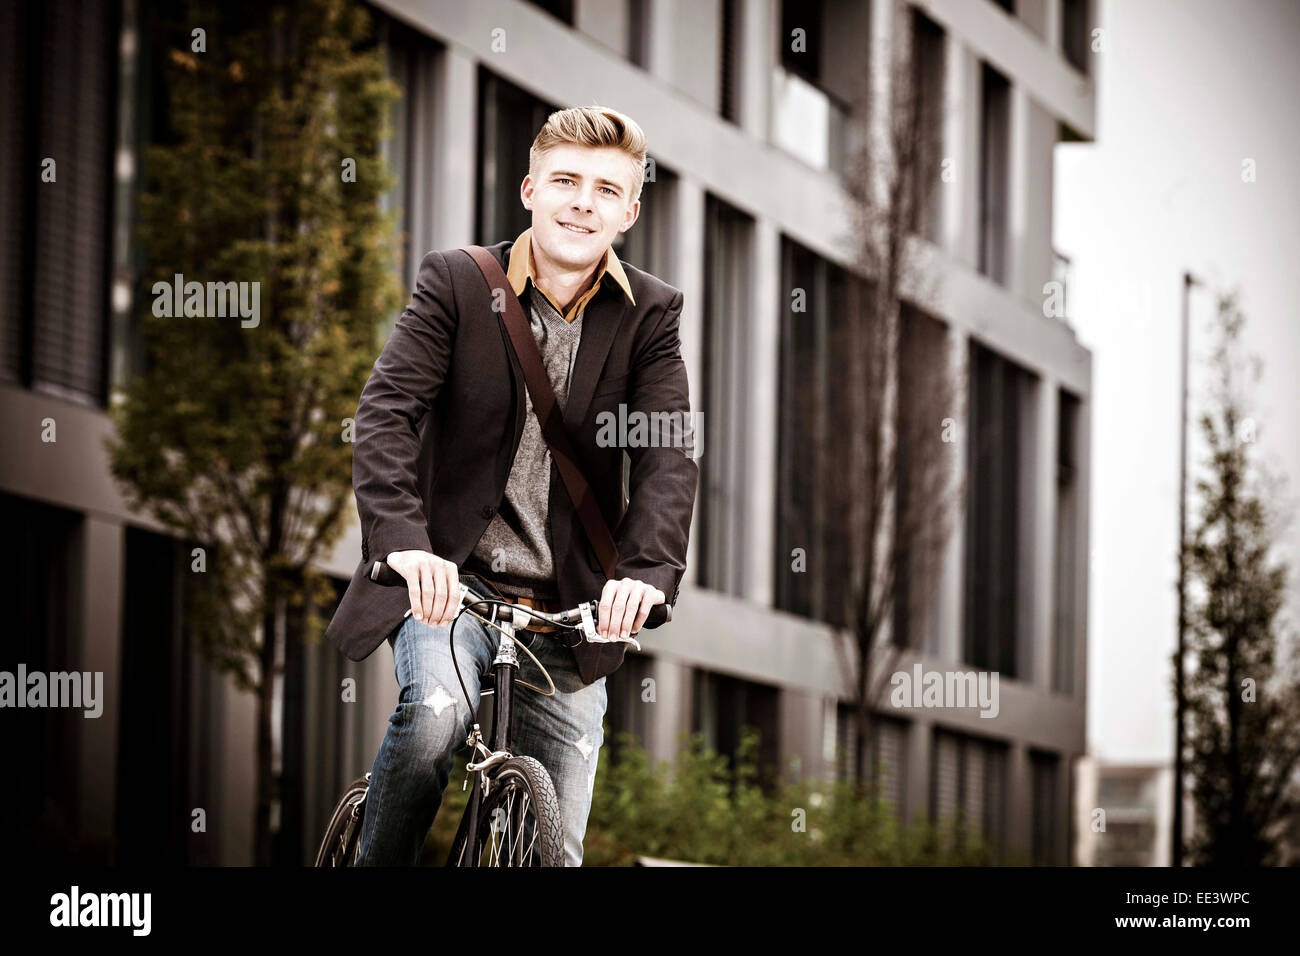 Young businessman with bicycle, Munich, Bavaria, Germany - Stock Image